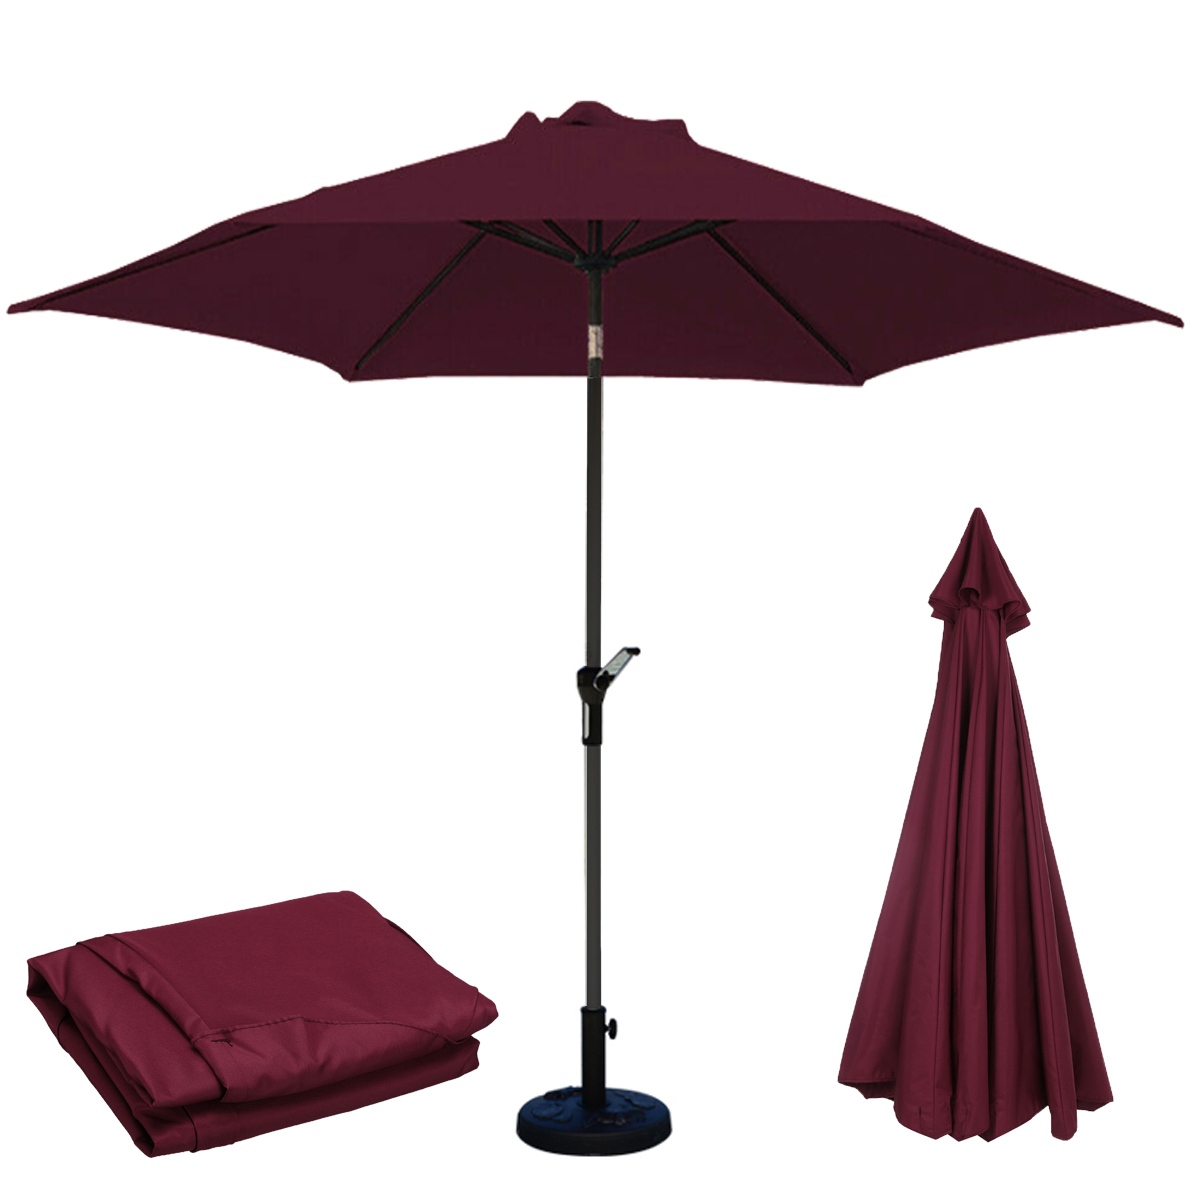 3M 6 Arm Parasol Canopy Cover Waterproof Awning Sun Shade Shelter Replacement Cloth Outdoor Garden Patio